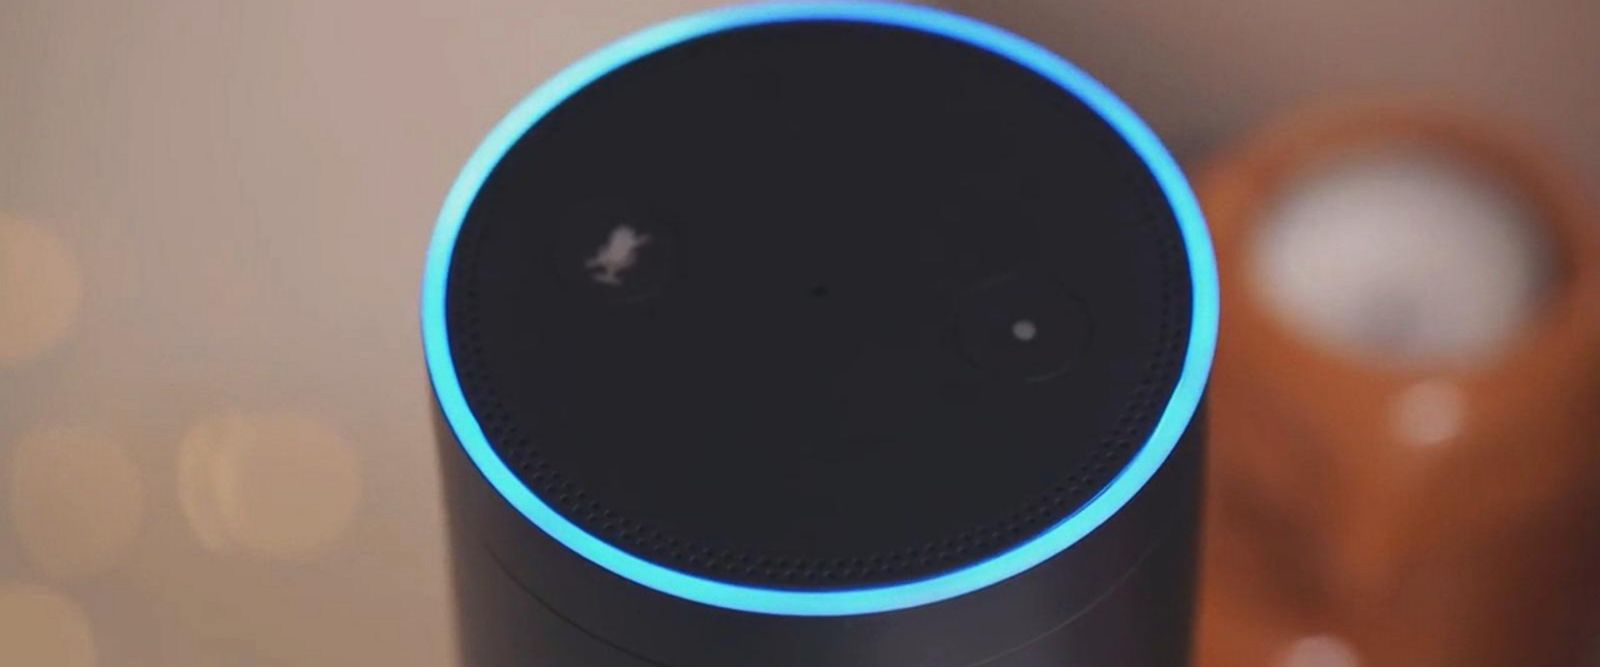 VIDEO: Flaw let Amazon Alexa record users without knowing